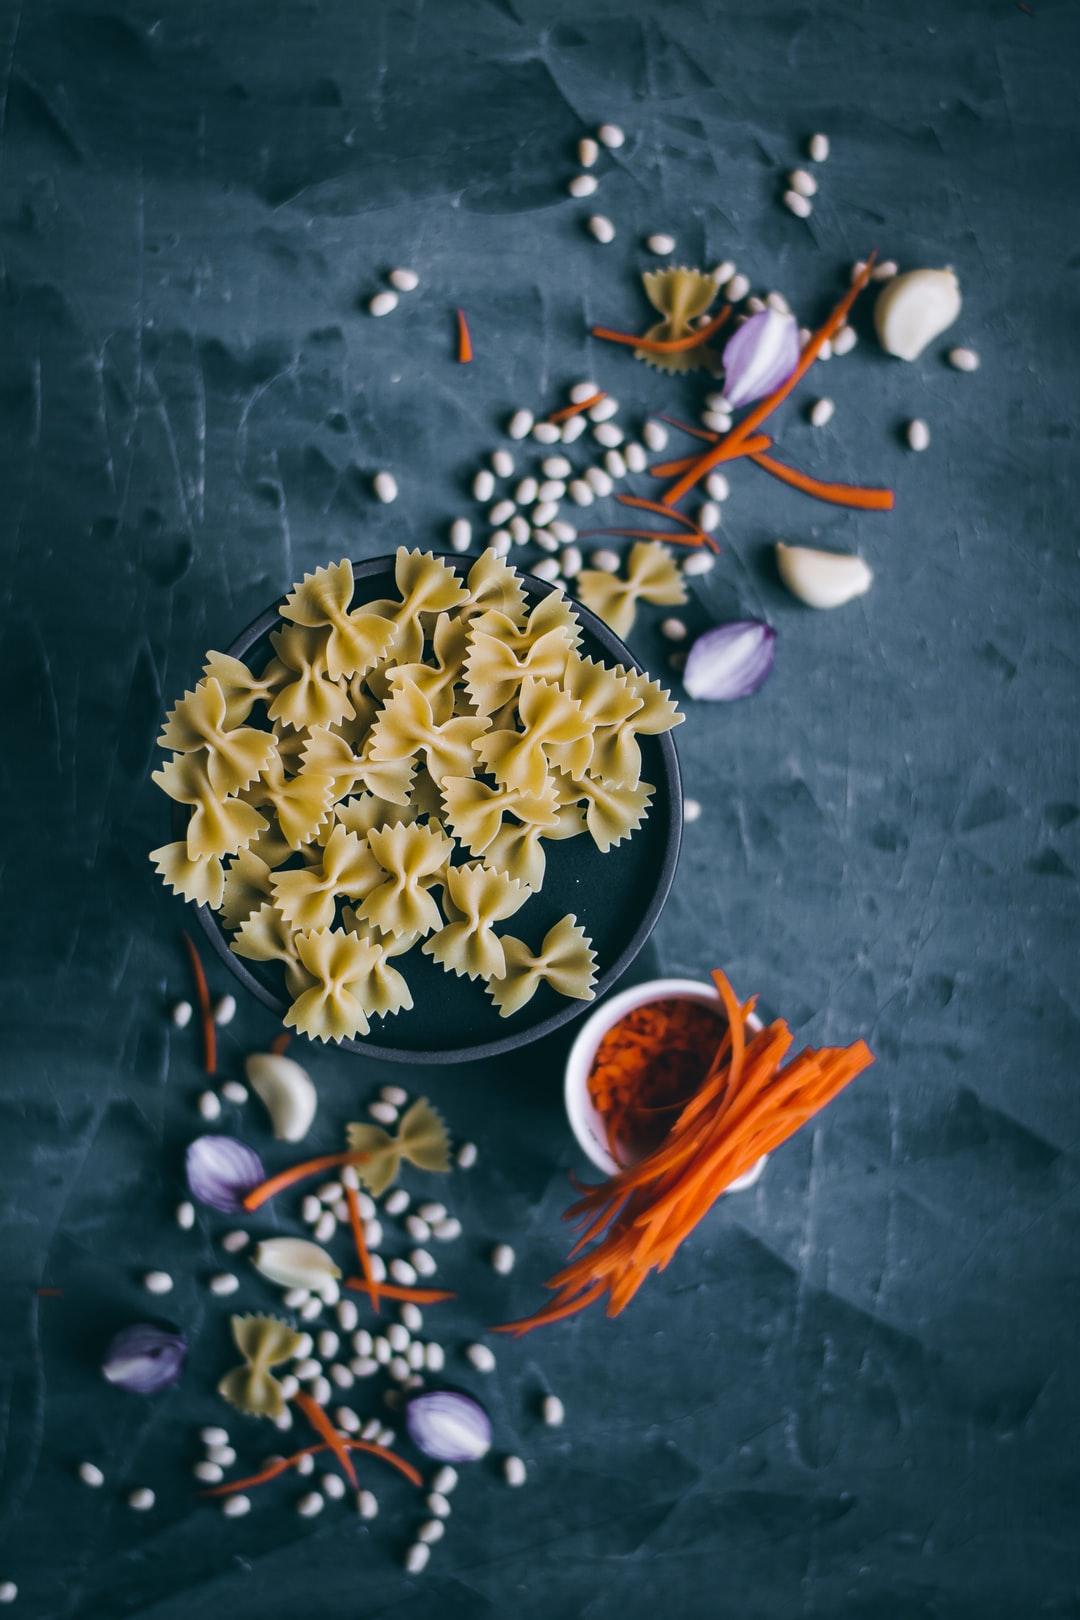 Bow tie pasta flat lay - of all the kinds of pasta out there, I find bow ties extra pretty!